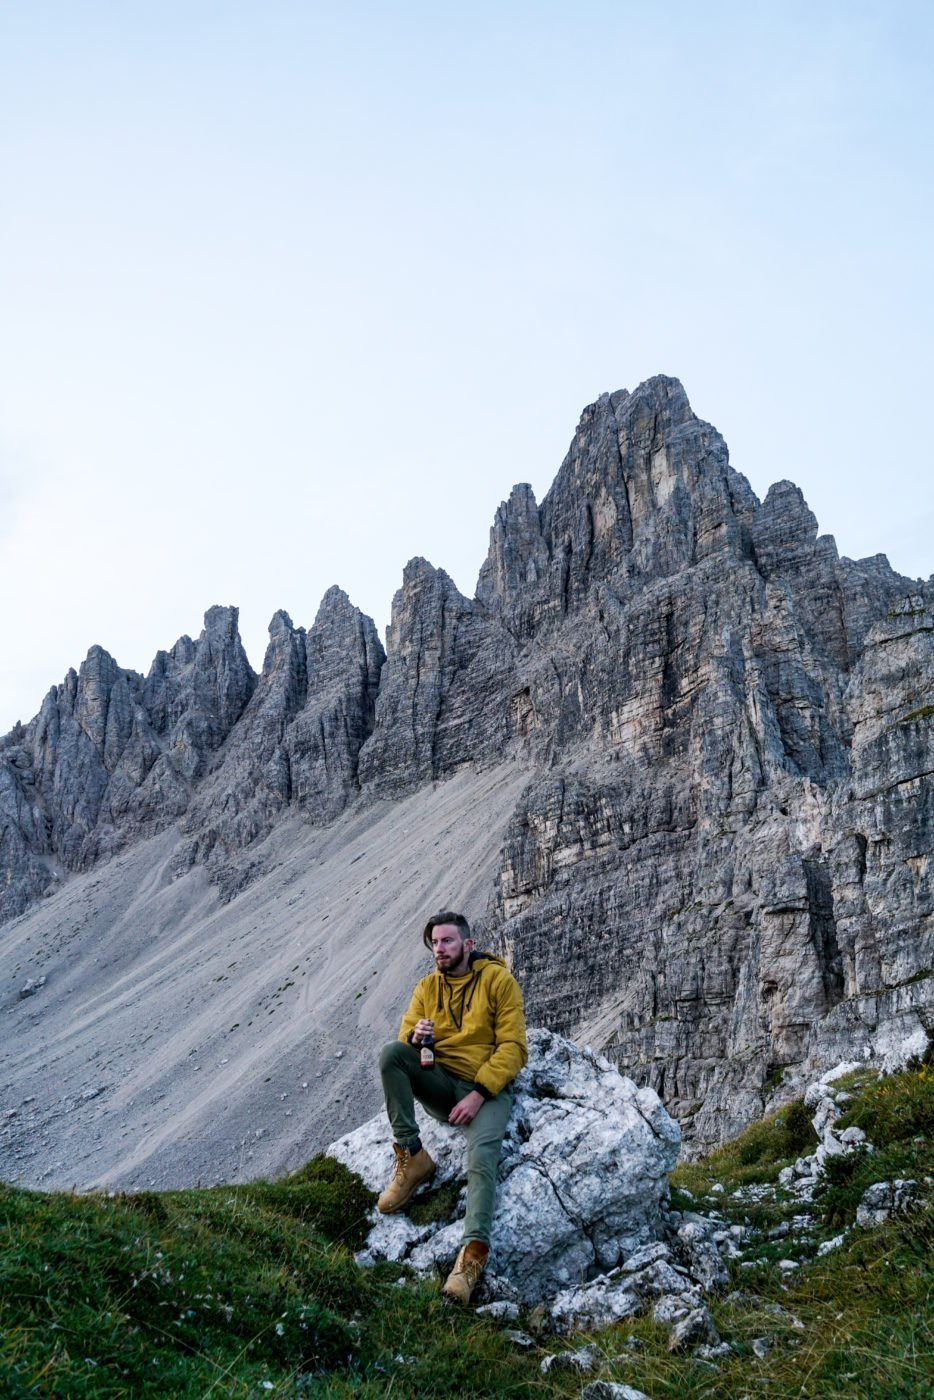 Famous Instagram spot in the Dolomites